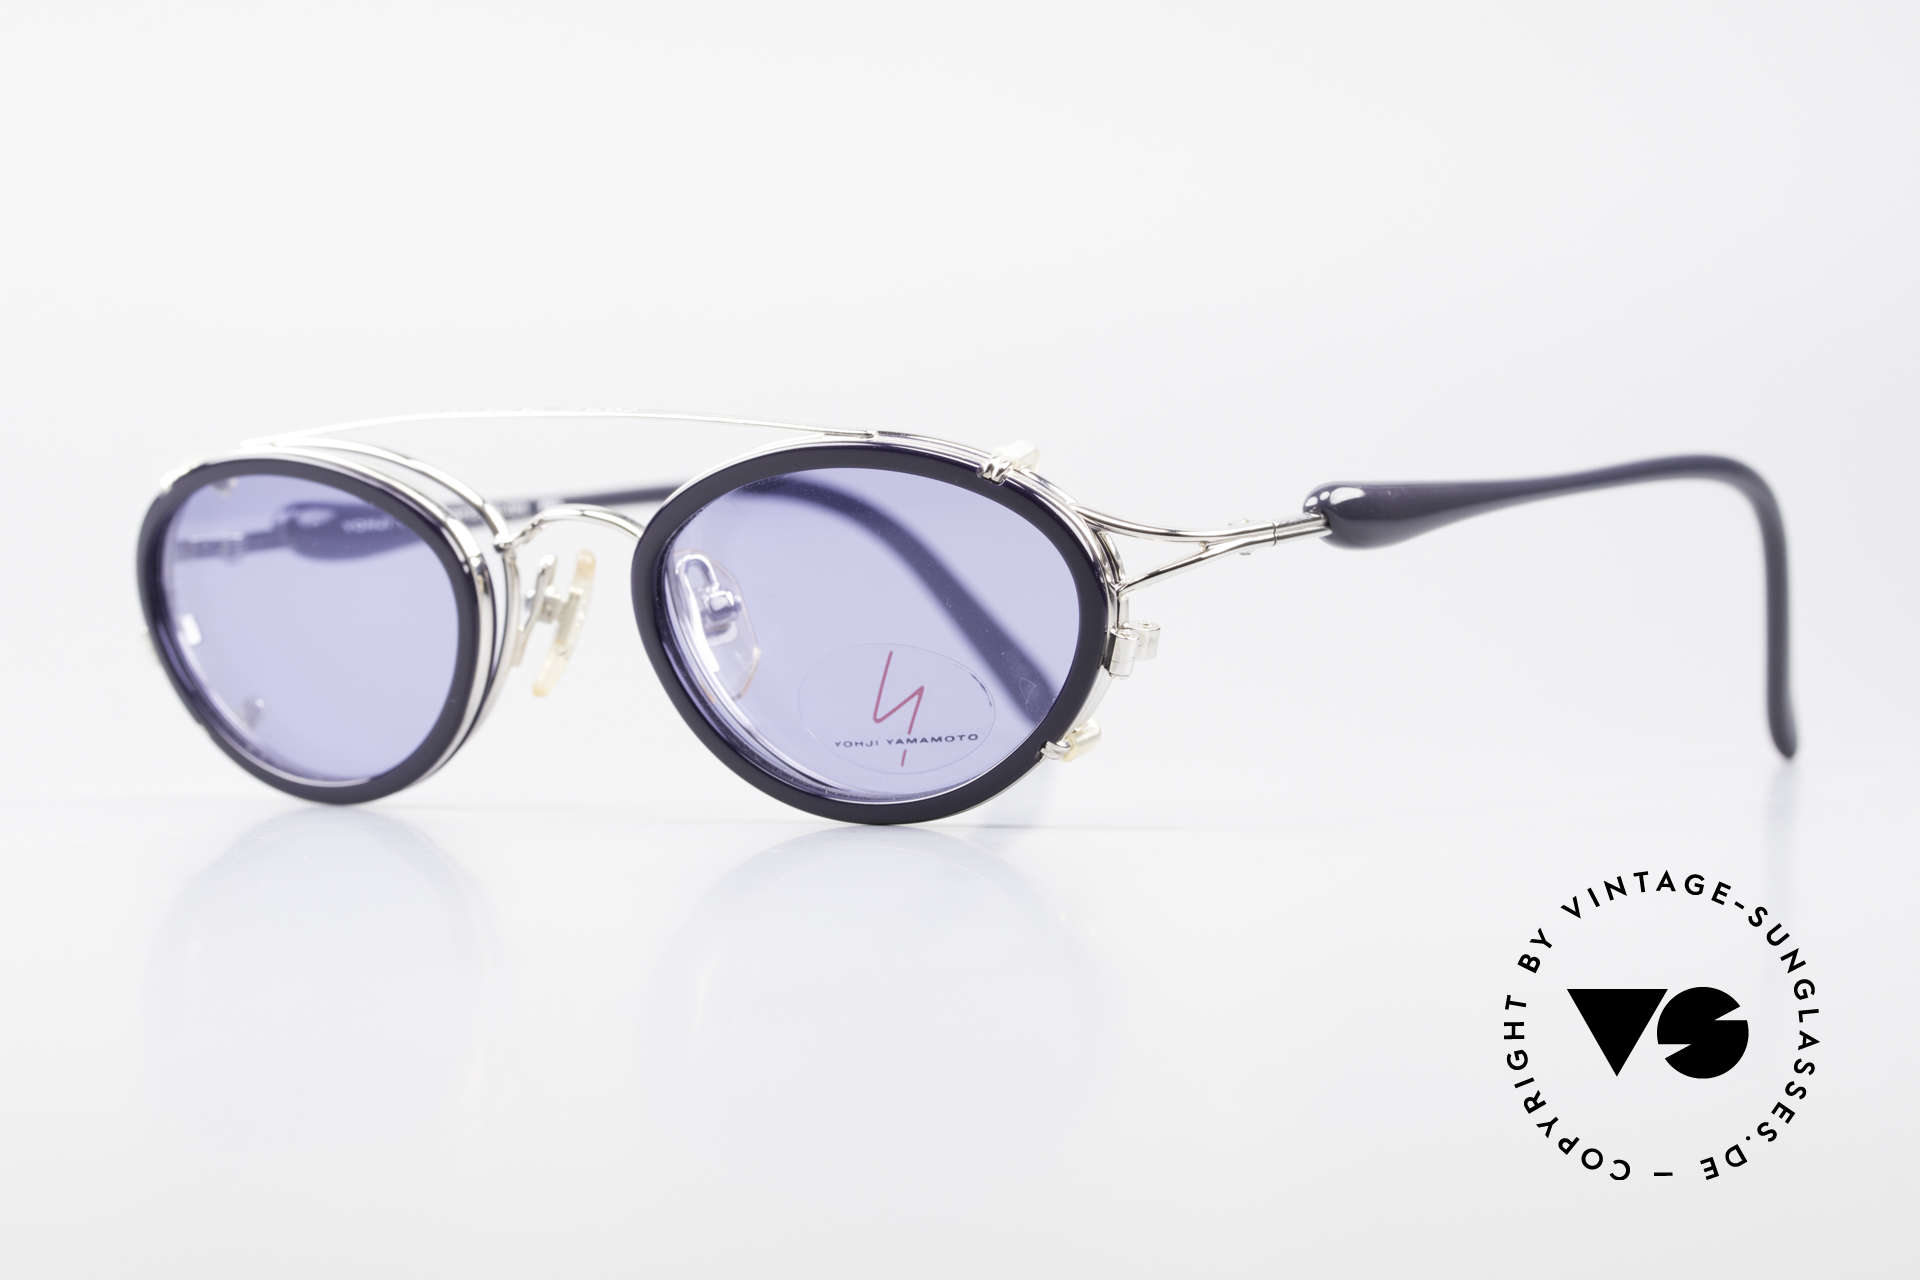 Yohji Yamamoto 51-7210 Clip-On 90's No Retro Shades, fantastic frame finish (deep-blue and silver-chrome), Made for Men and Women